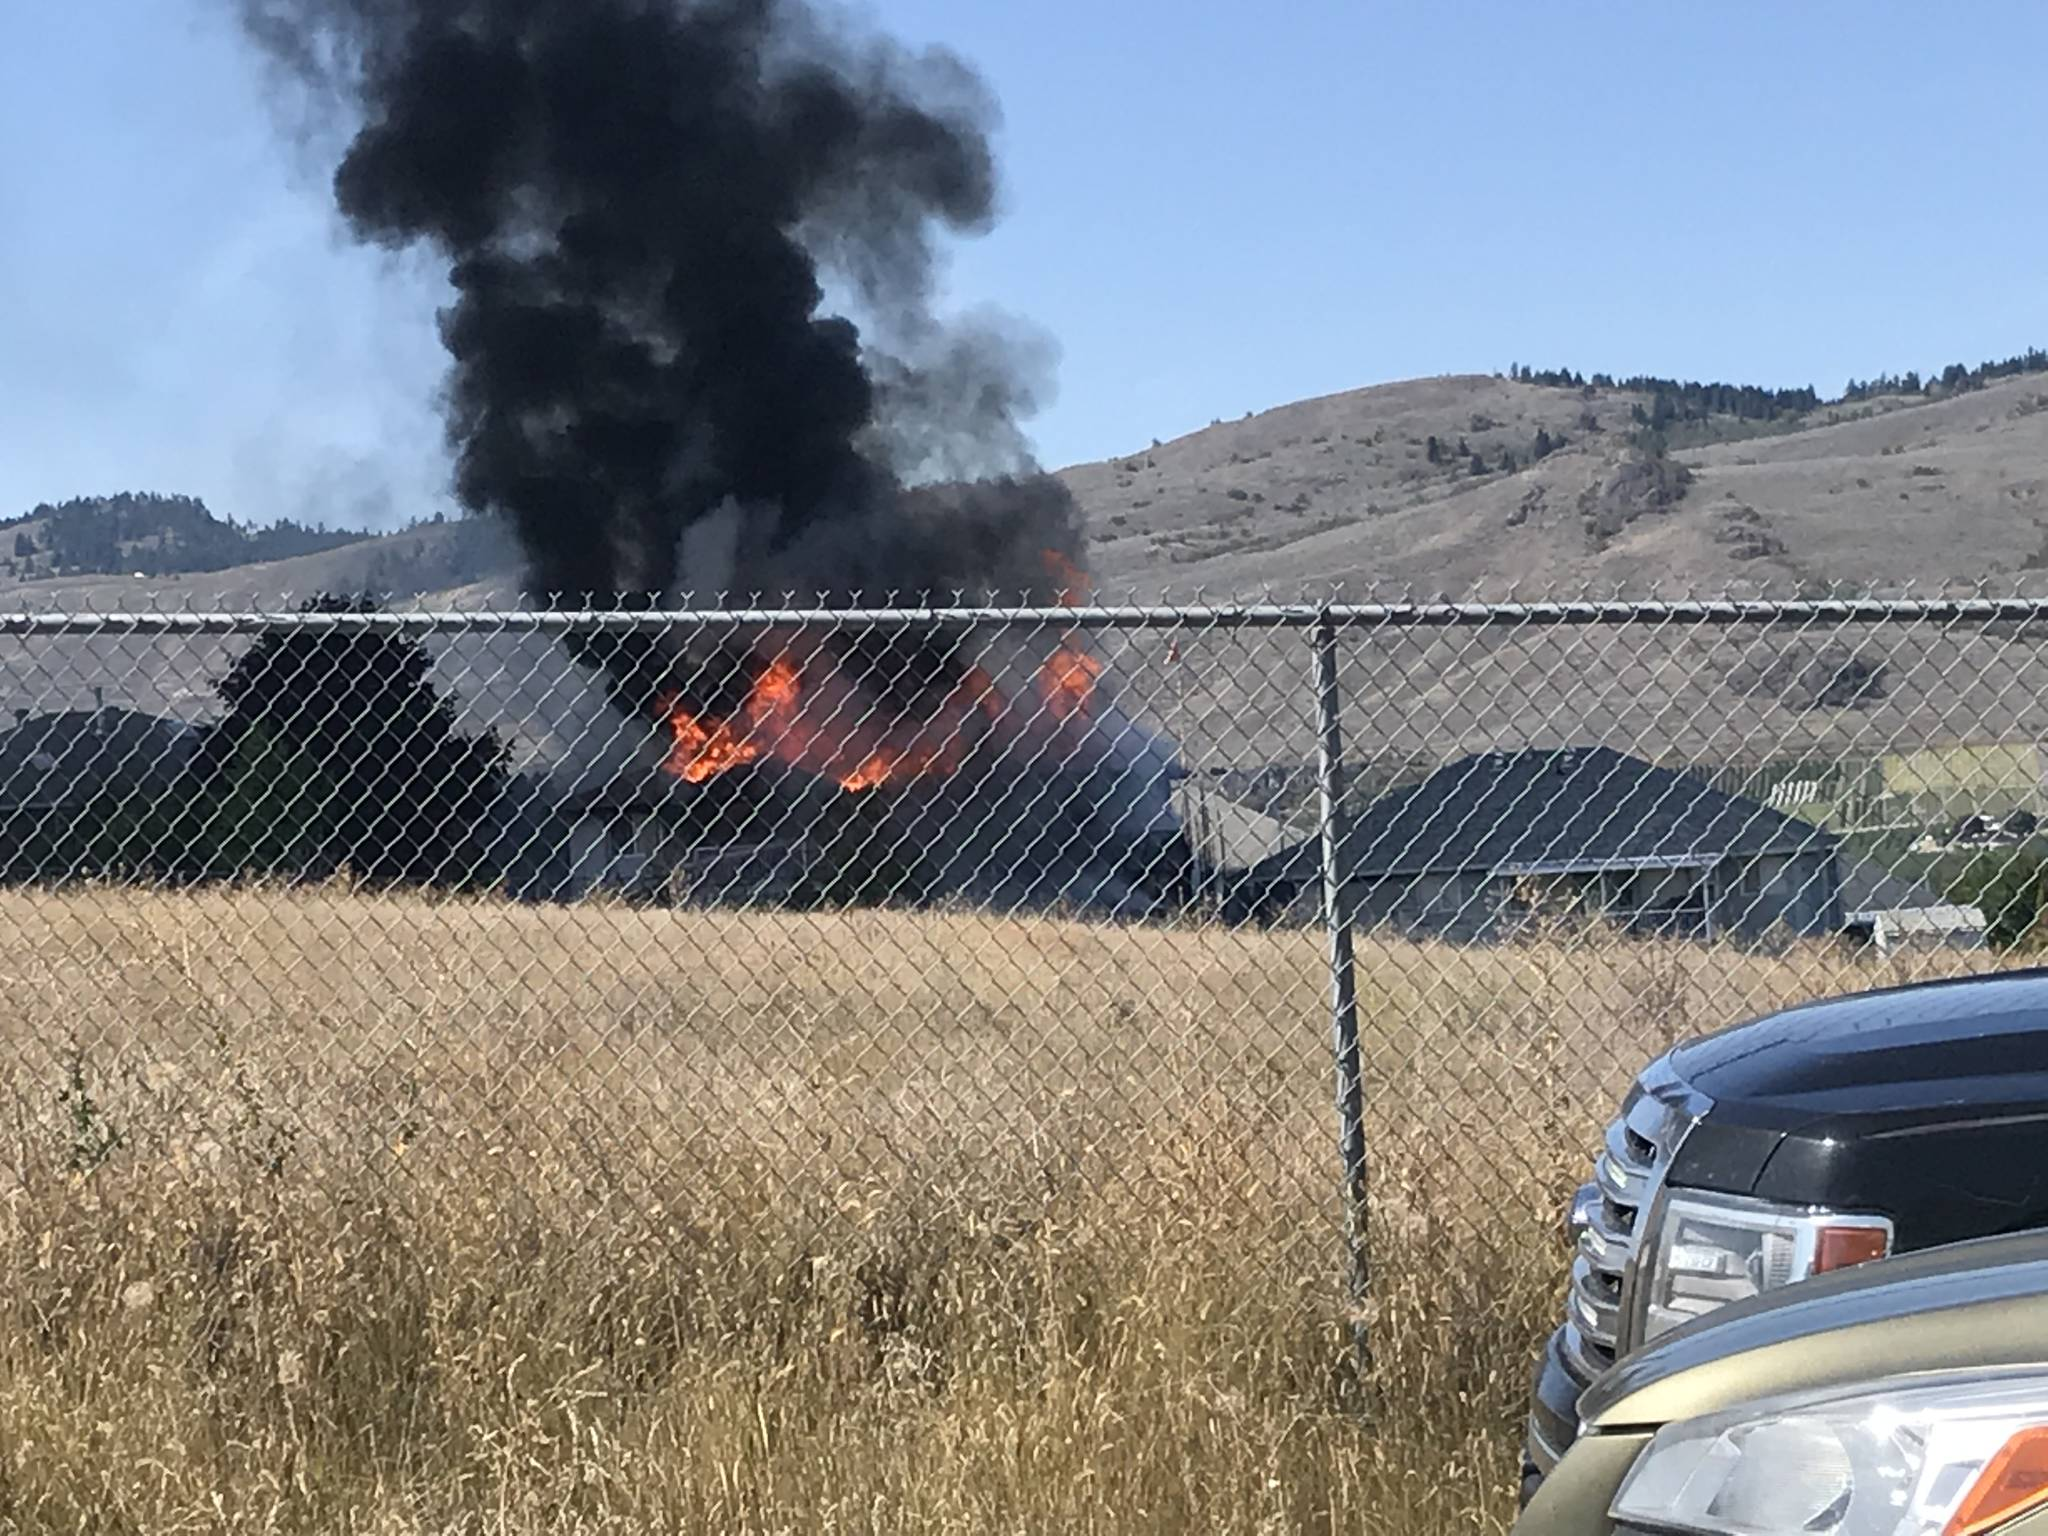 North Okanagan home scorched by flames